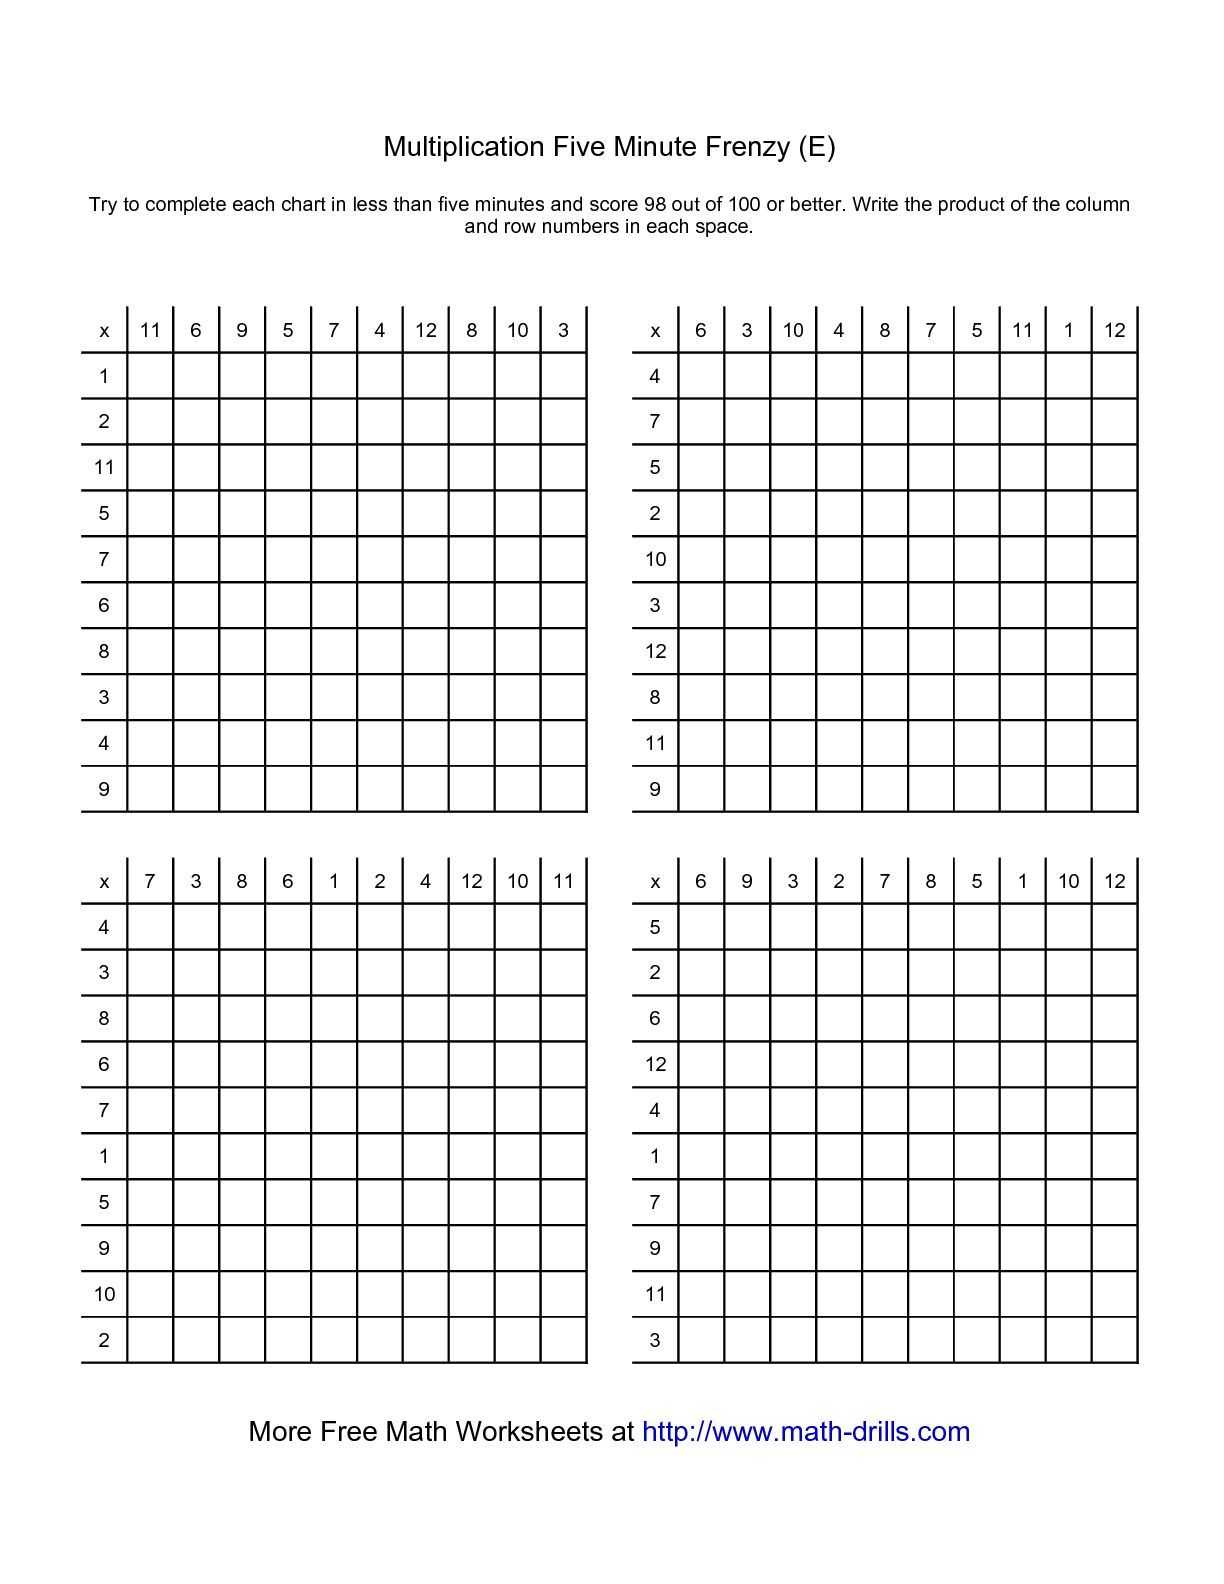 Facts About Birds Worksheet and the Five Minute Frenzy Four Per Page E Math Worksheet From the